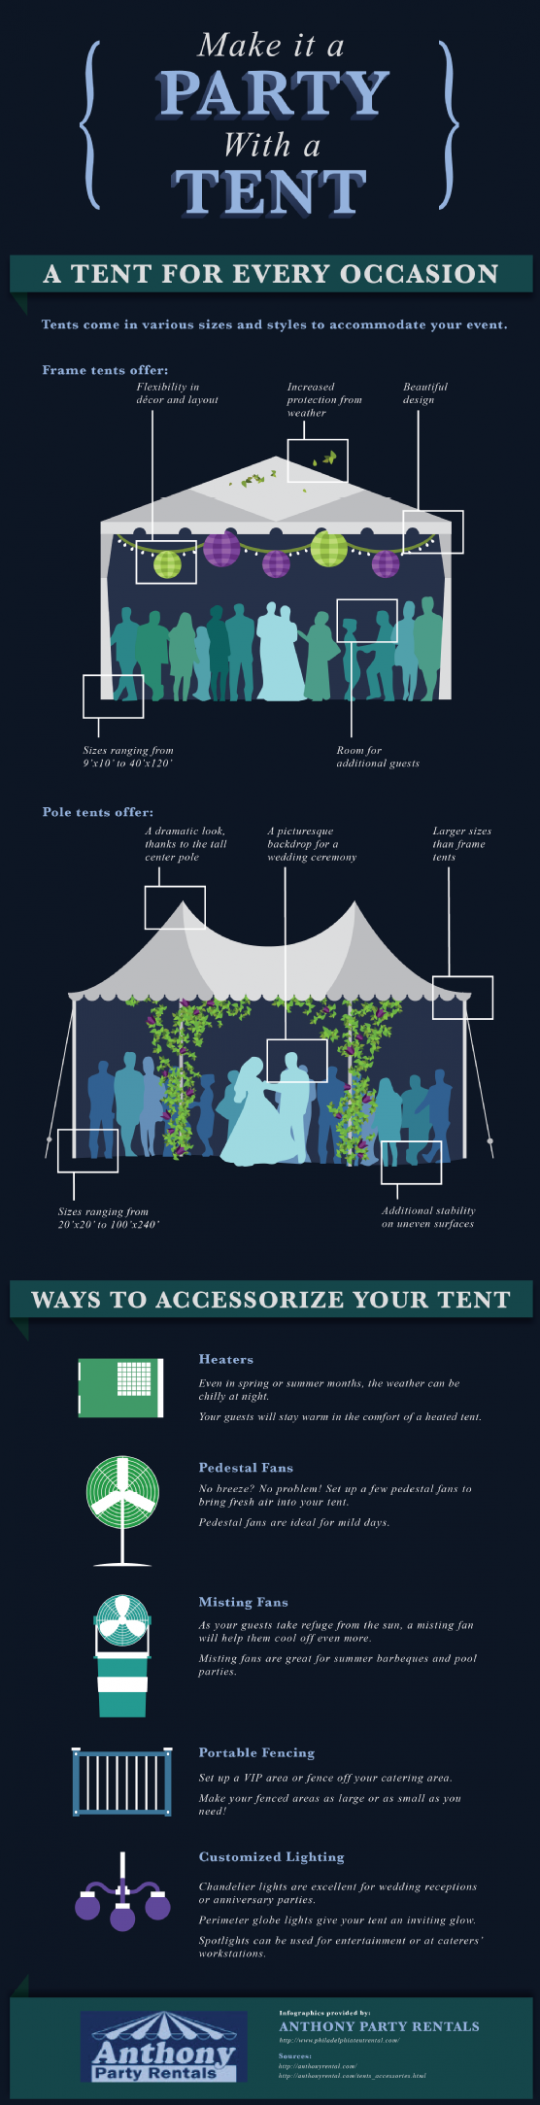 Make it a Party with a Tent!